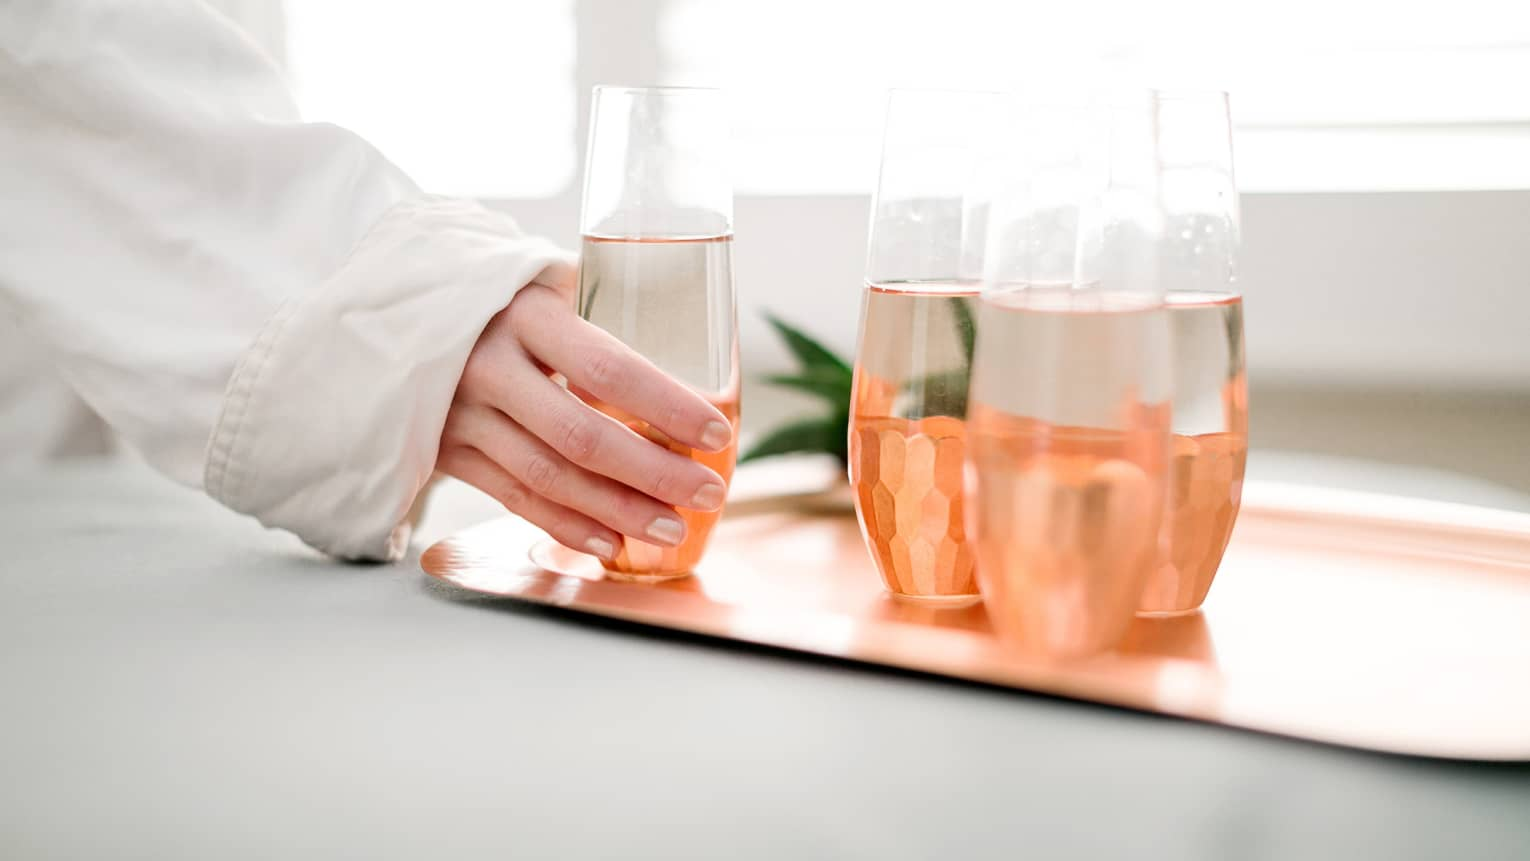 Woman in white bathrobe hand reaches for glass of water, next to three glasses on rose gold tray